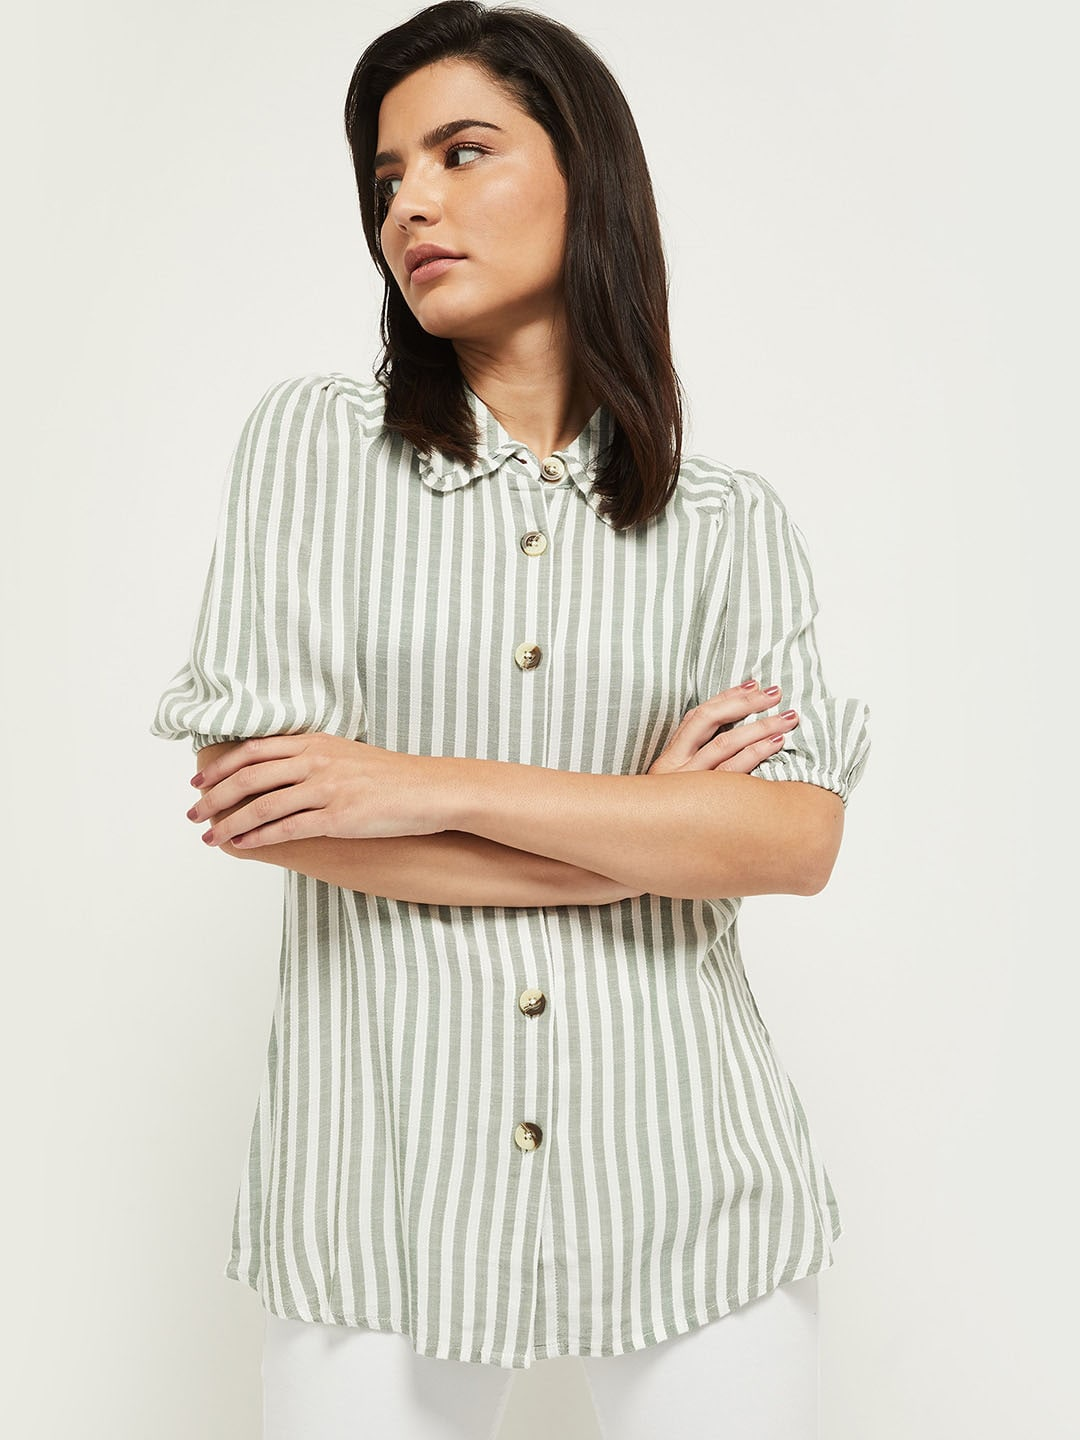 max Women Green and White Striped Casual Shirt